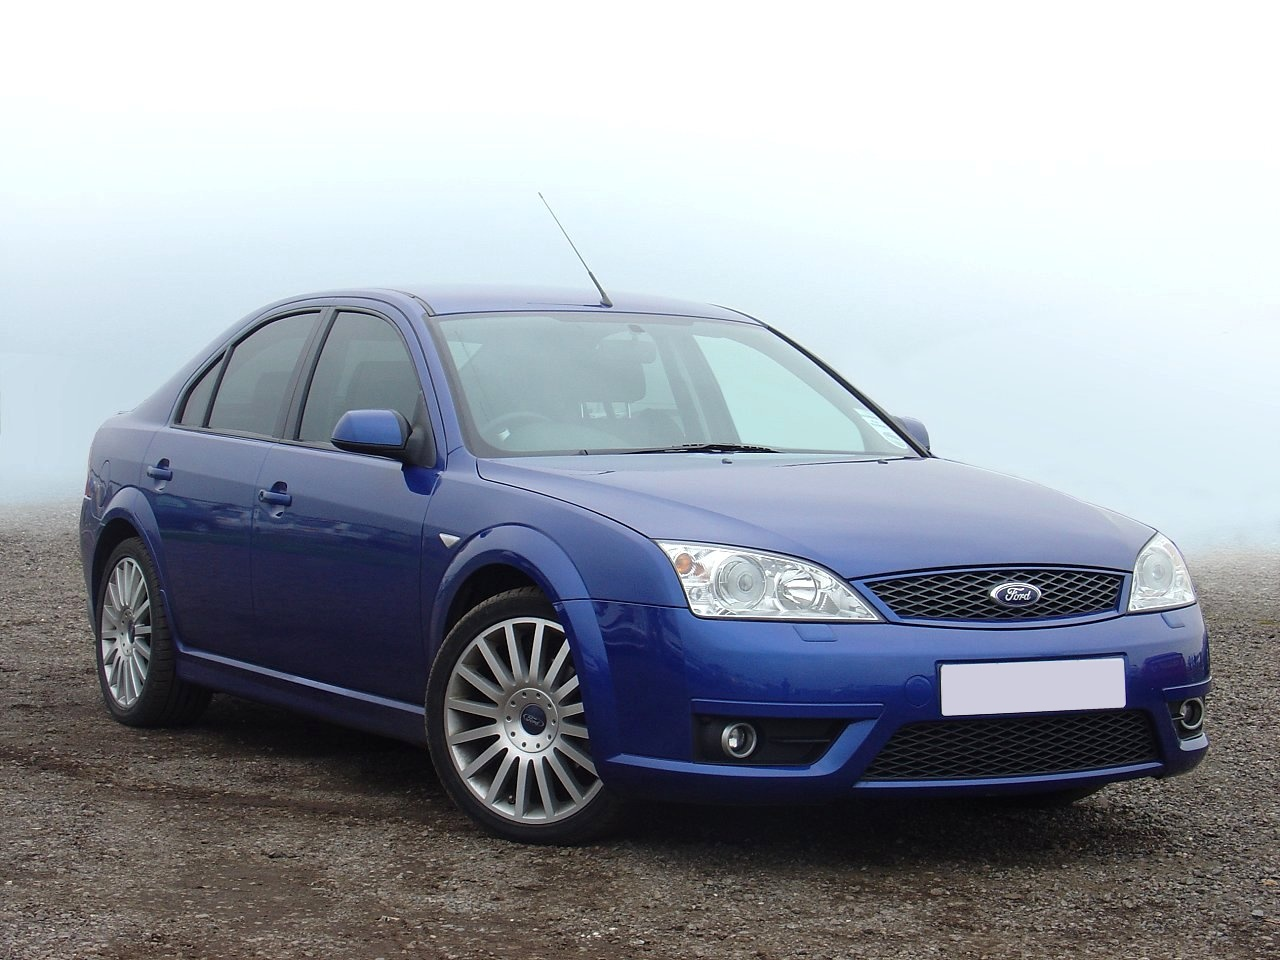 File:Ford Mondeo ST220 Blue.jpg - Wikipedia